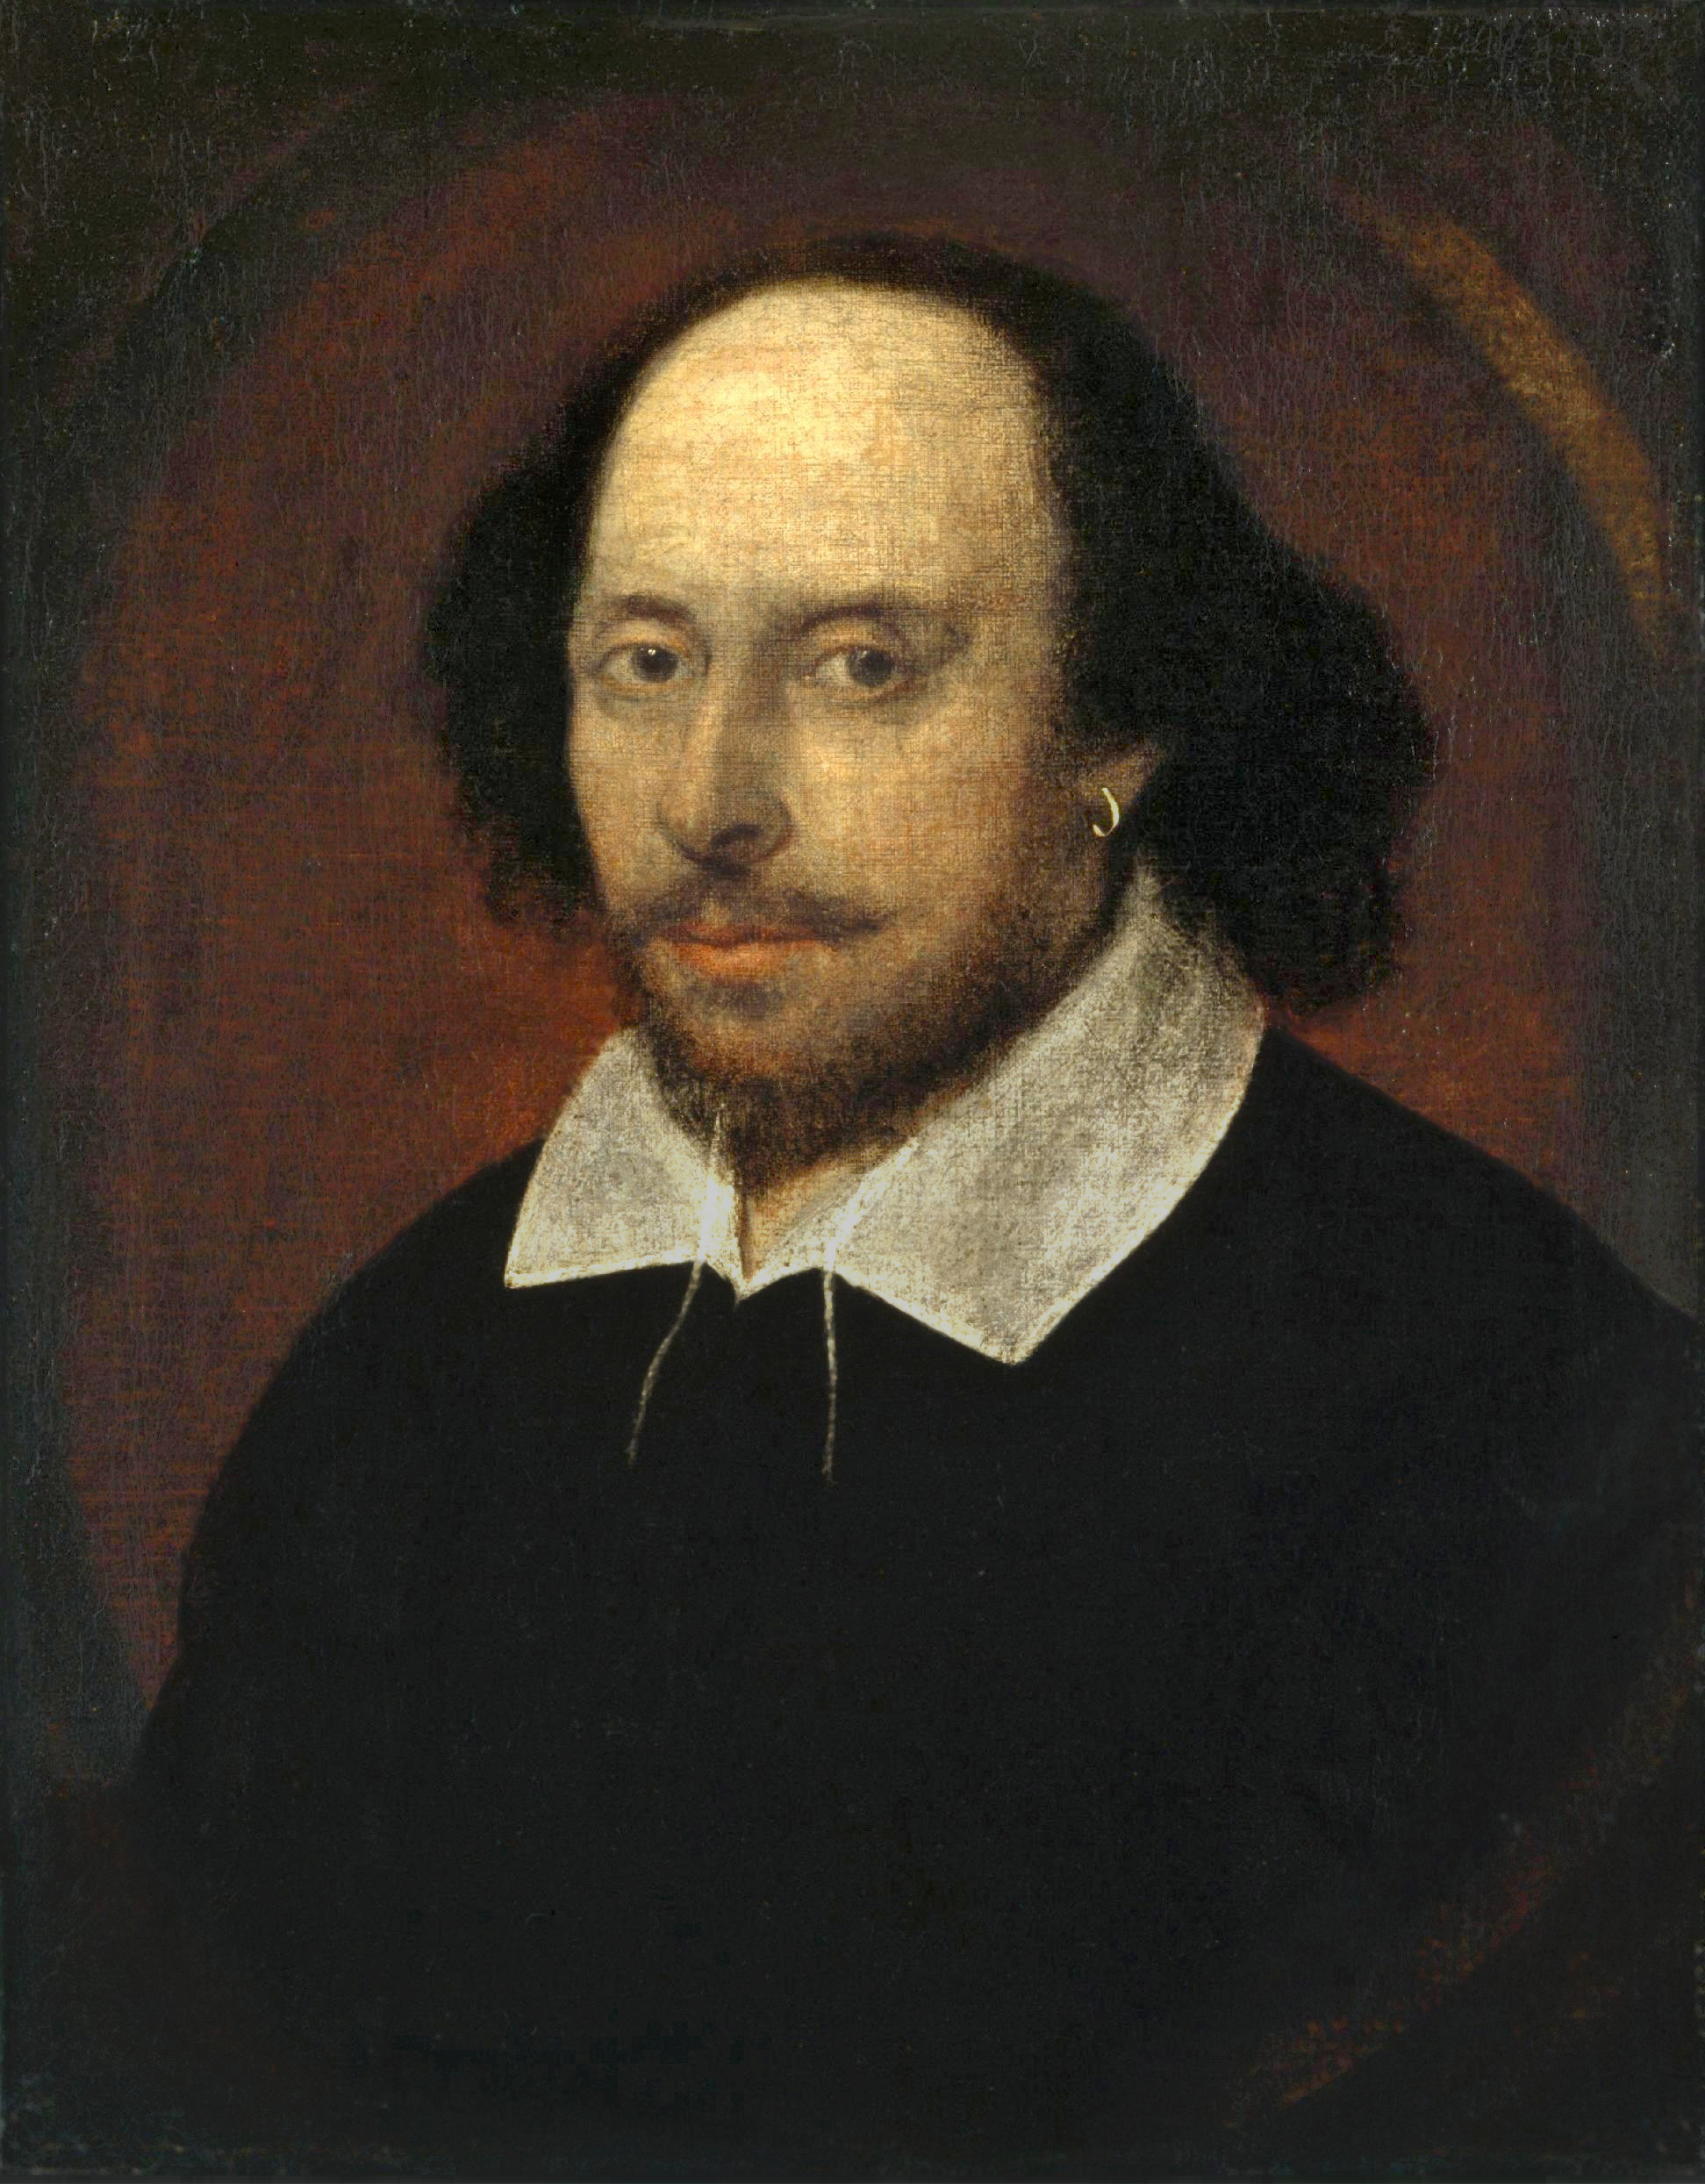 william shakespeare william shakespeare shakespeare jpg